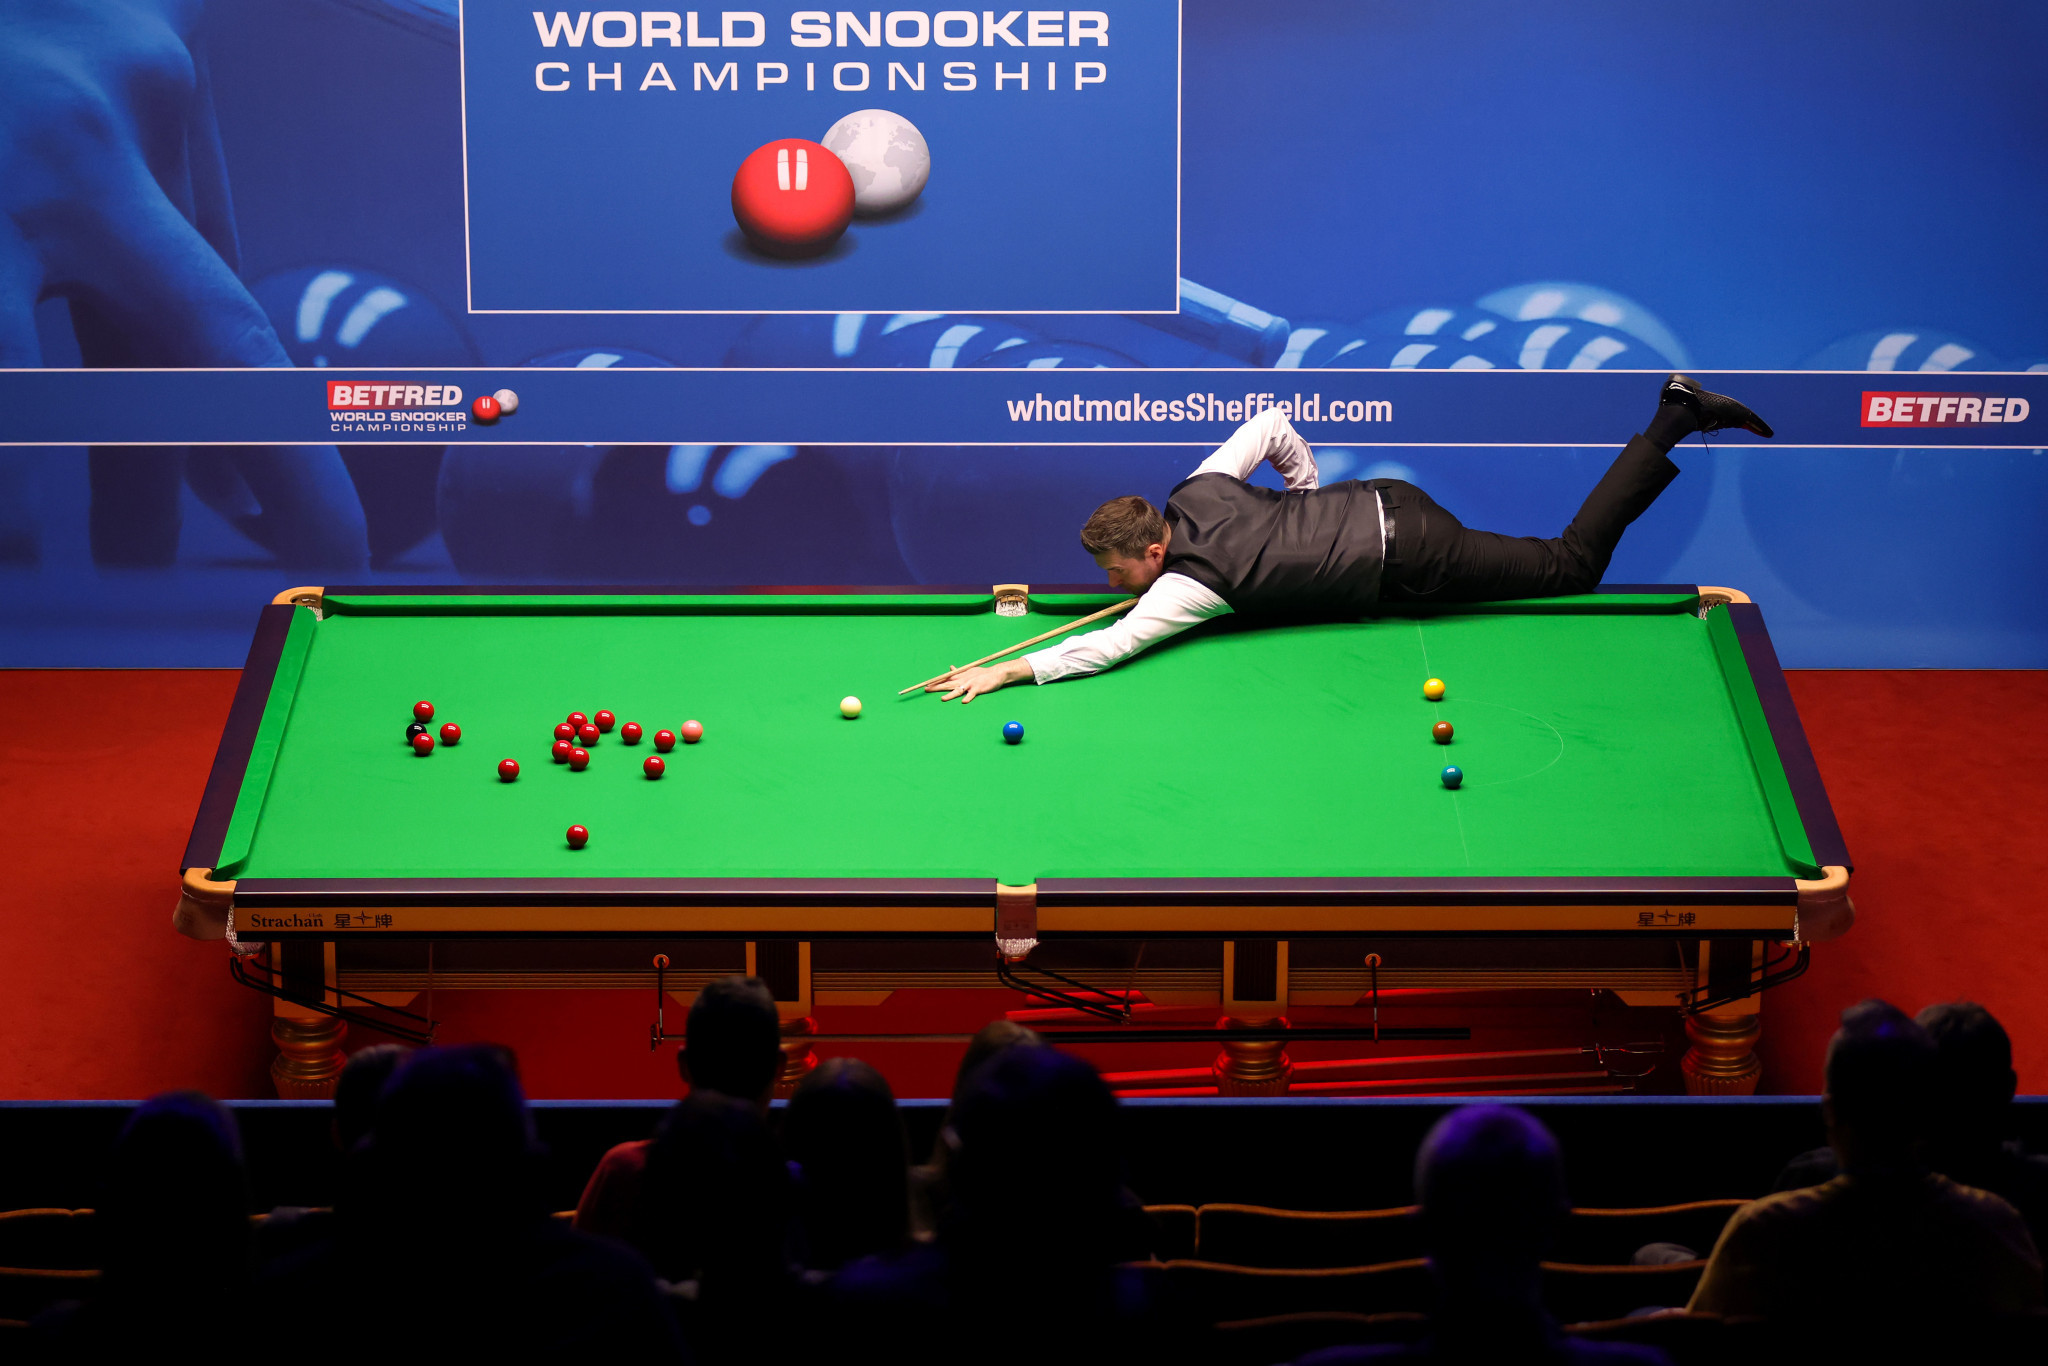 Three-time world champion Mark Selby said he was playing